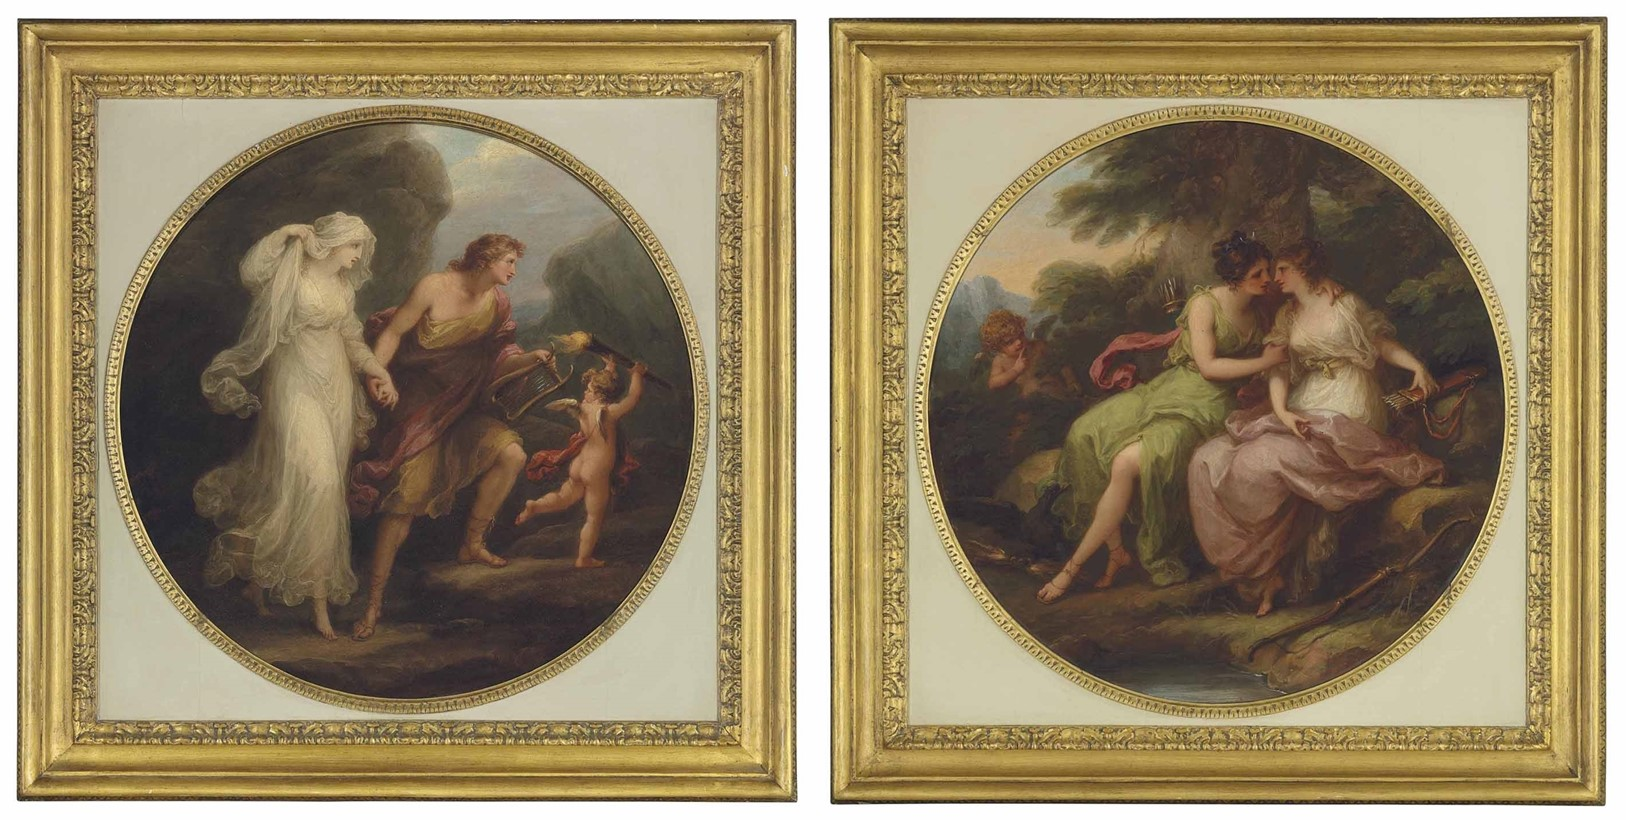 angelica kauffman orpheus_and_eurydice_and_jupiter_in_the_guise_of Diana, and Callisto gravures de Burke 1782 coll priv